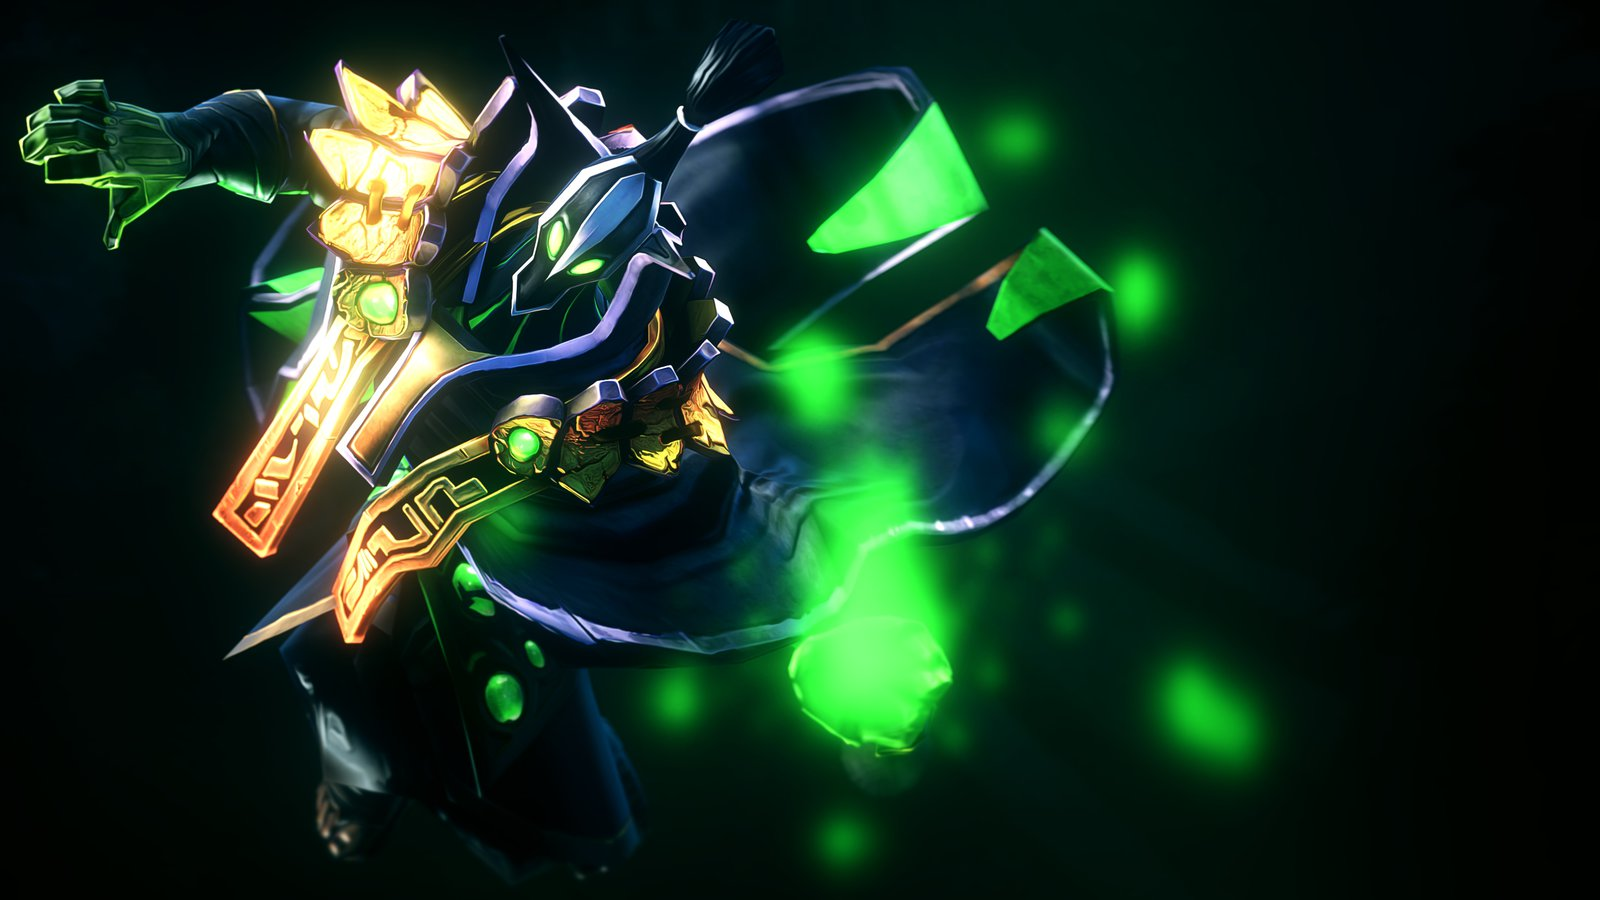 Sick Wallpapers For Iphone 5 Rubick Computer Wallpaper Free Wallpapers Dota 2 Private